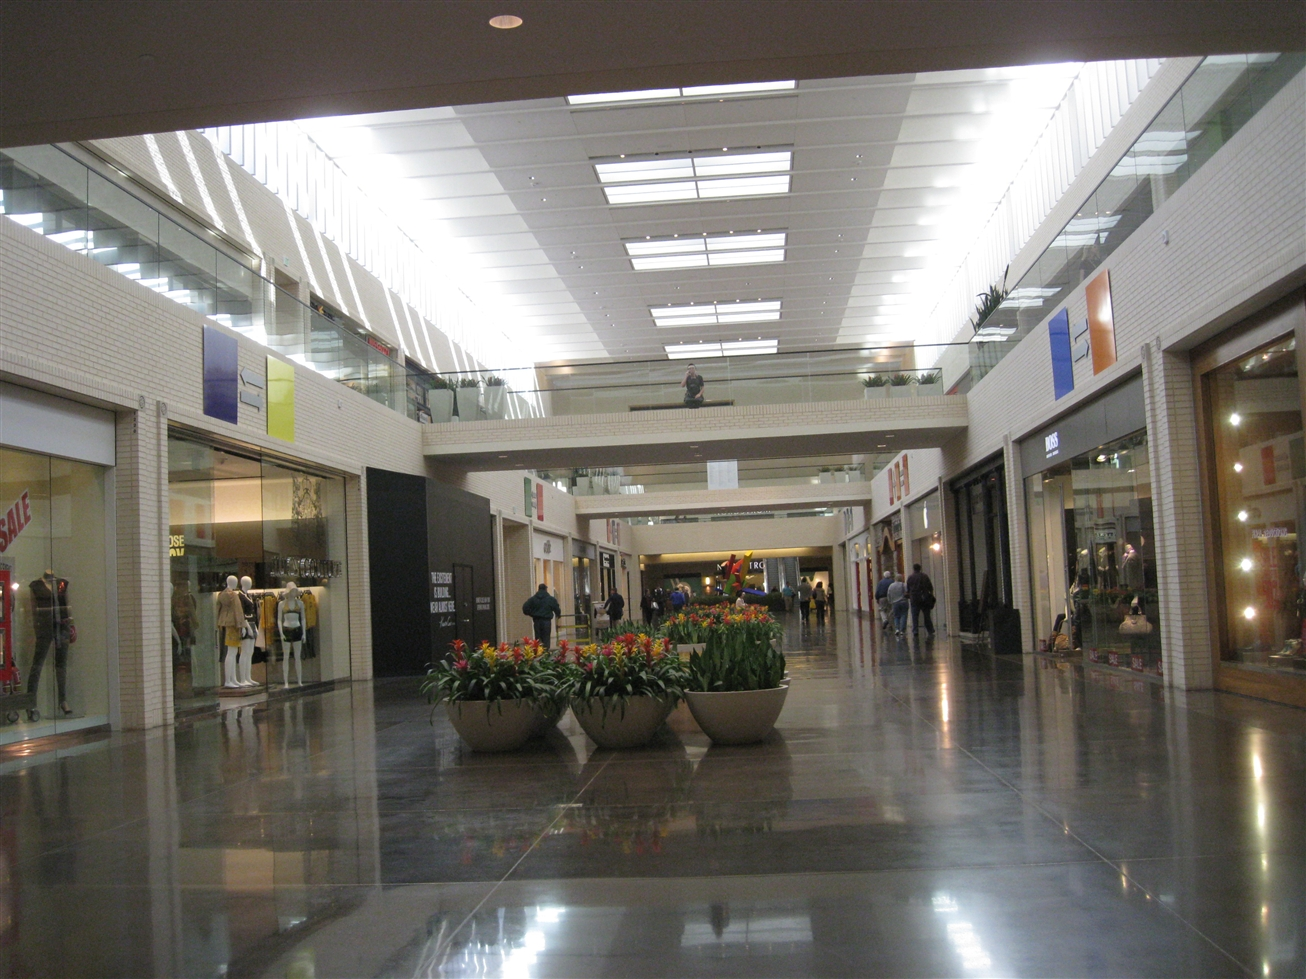 NorthPark Security, Inc. Is a growing, Security Company for an upscale retail center, with over 50 years of service.